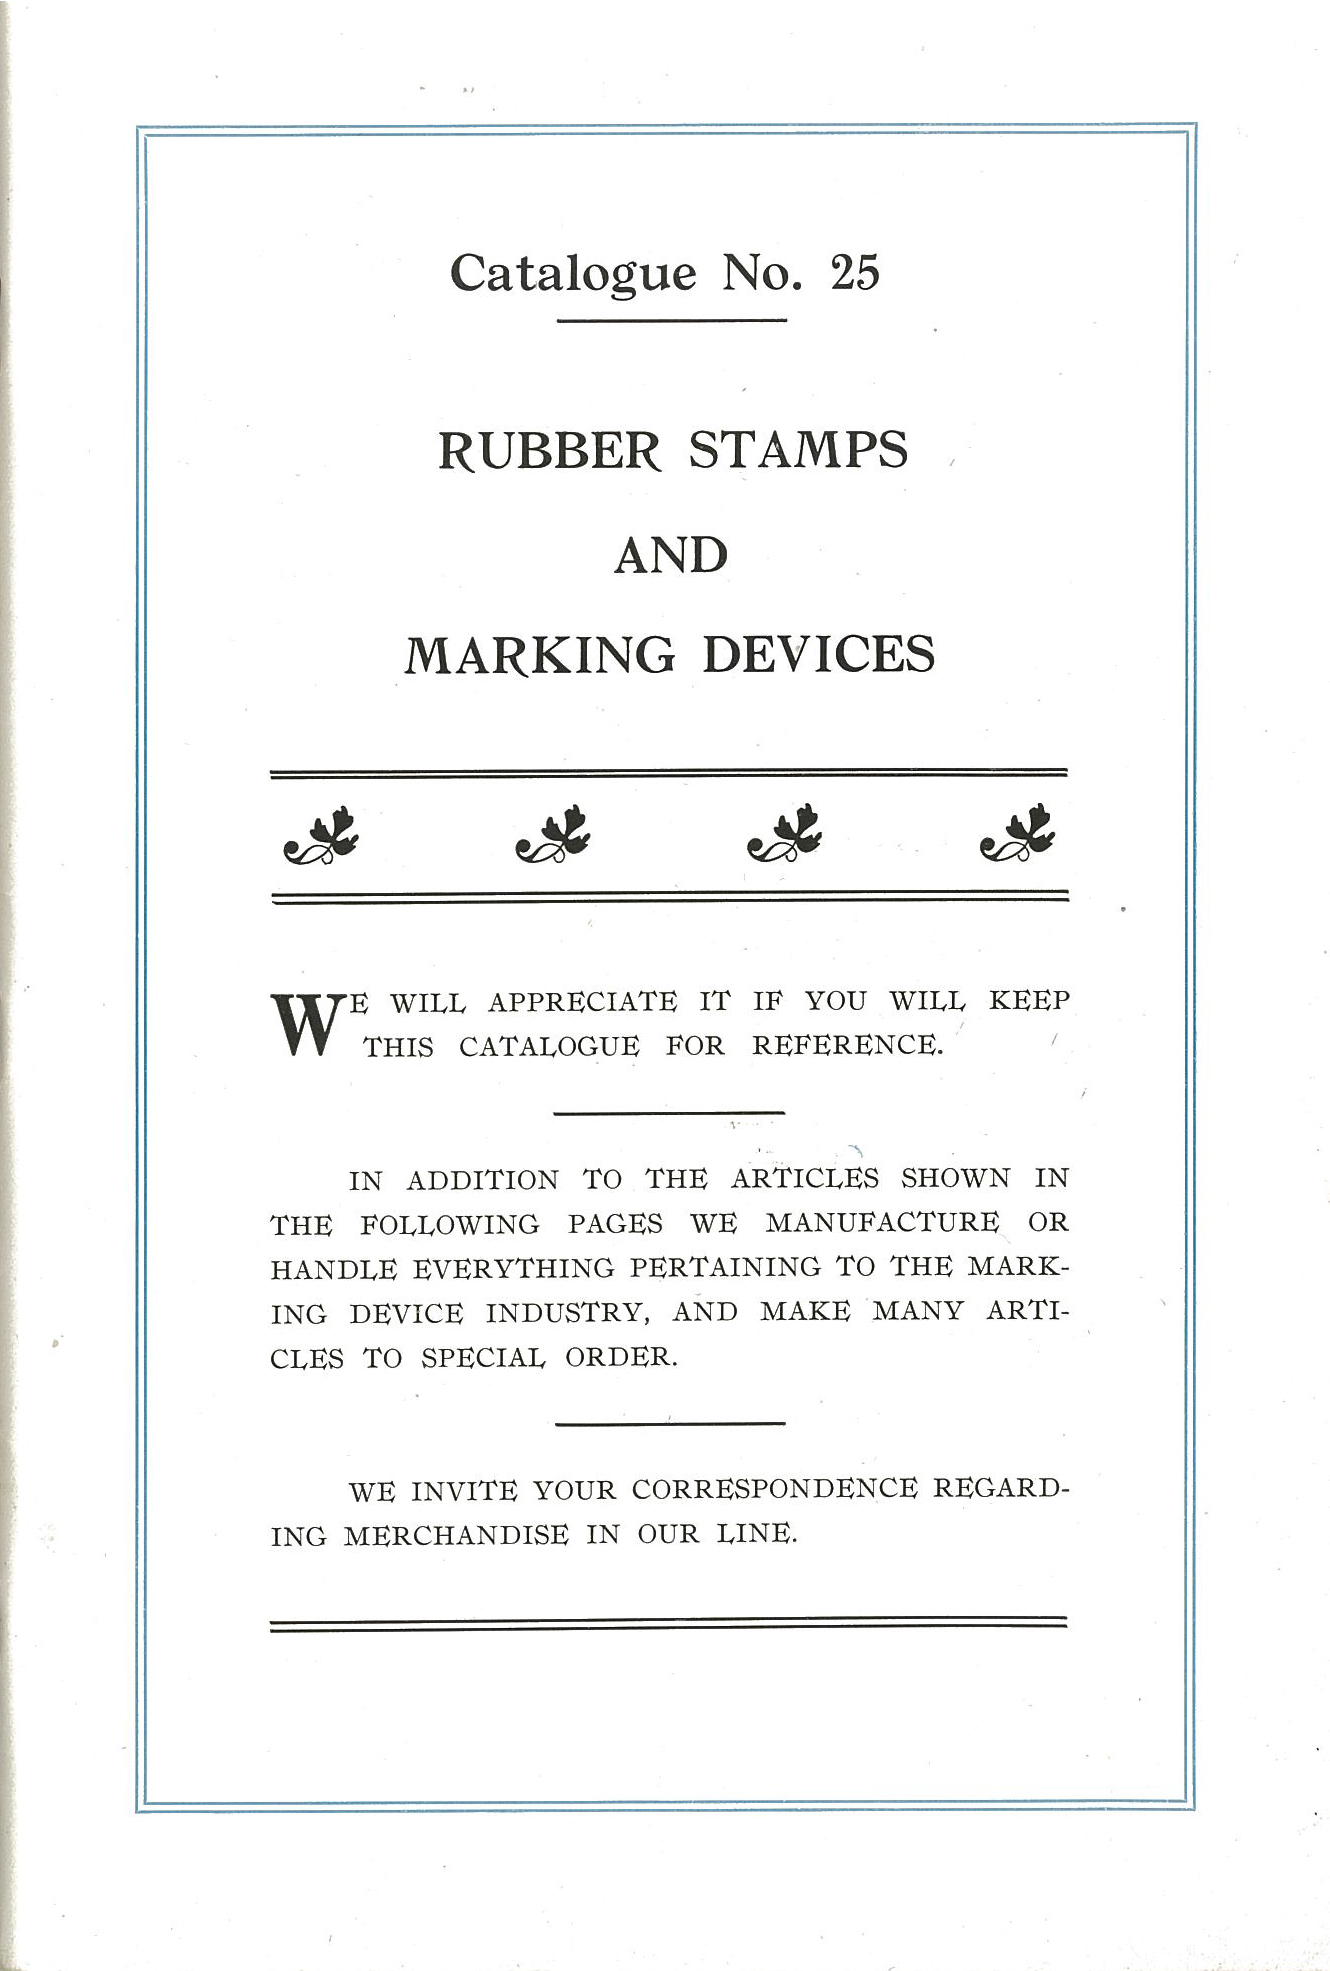 Rubber Stamps and Marking Devices Catalogue